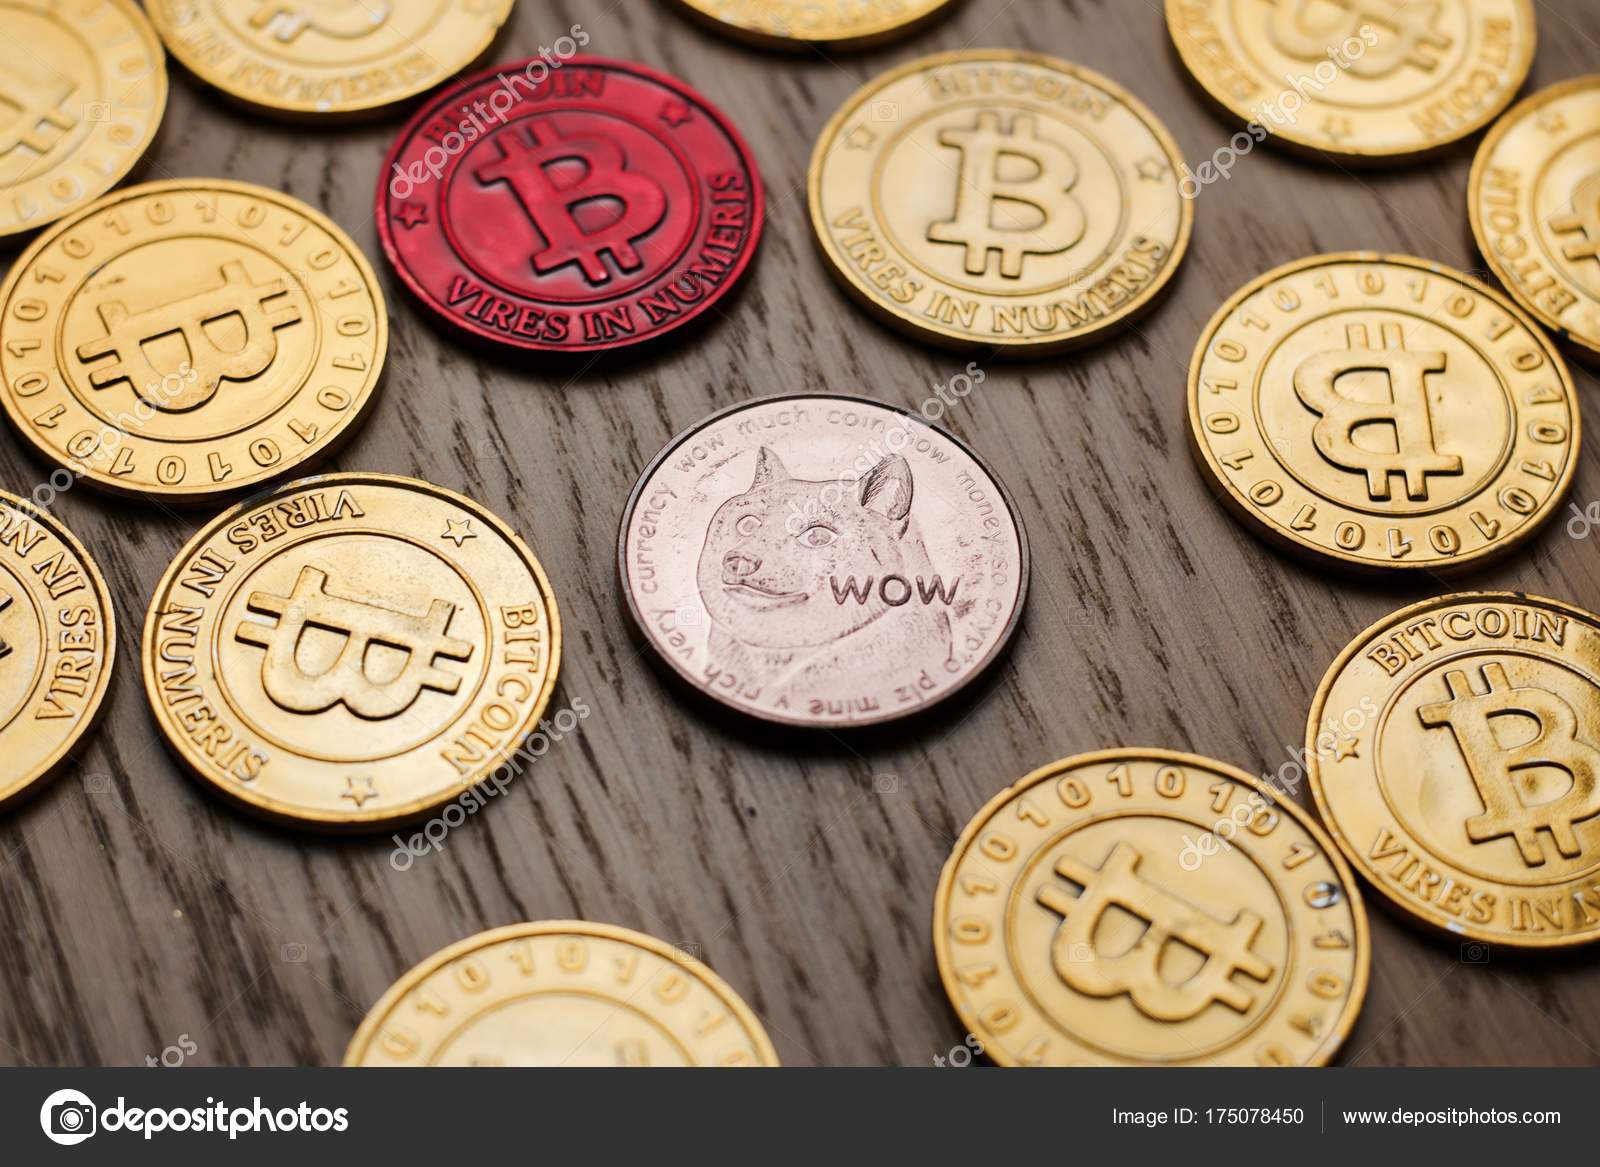 Dogecoin Physical Coin : Coins Paper Money Doge Coin Gold ...